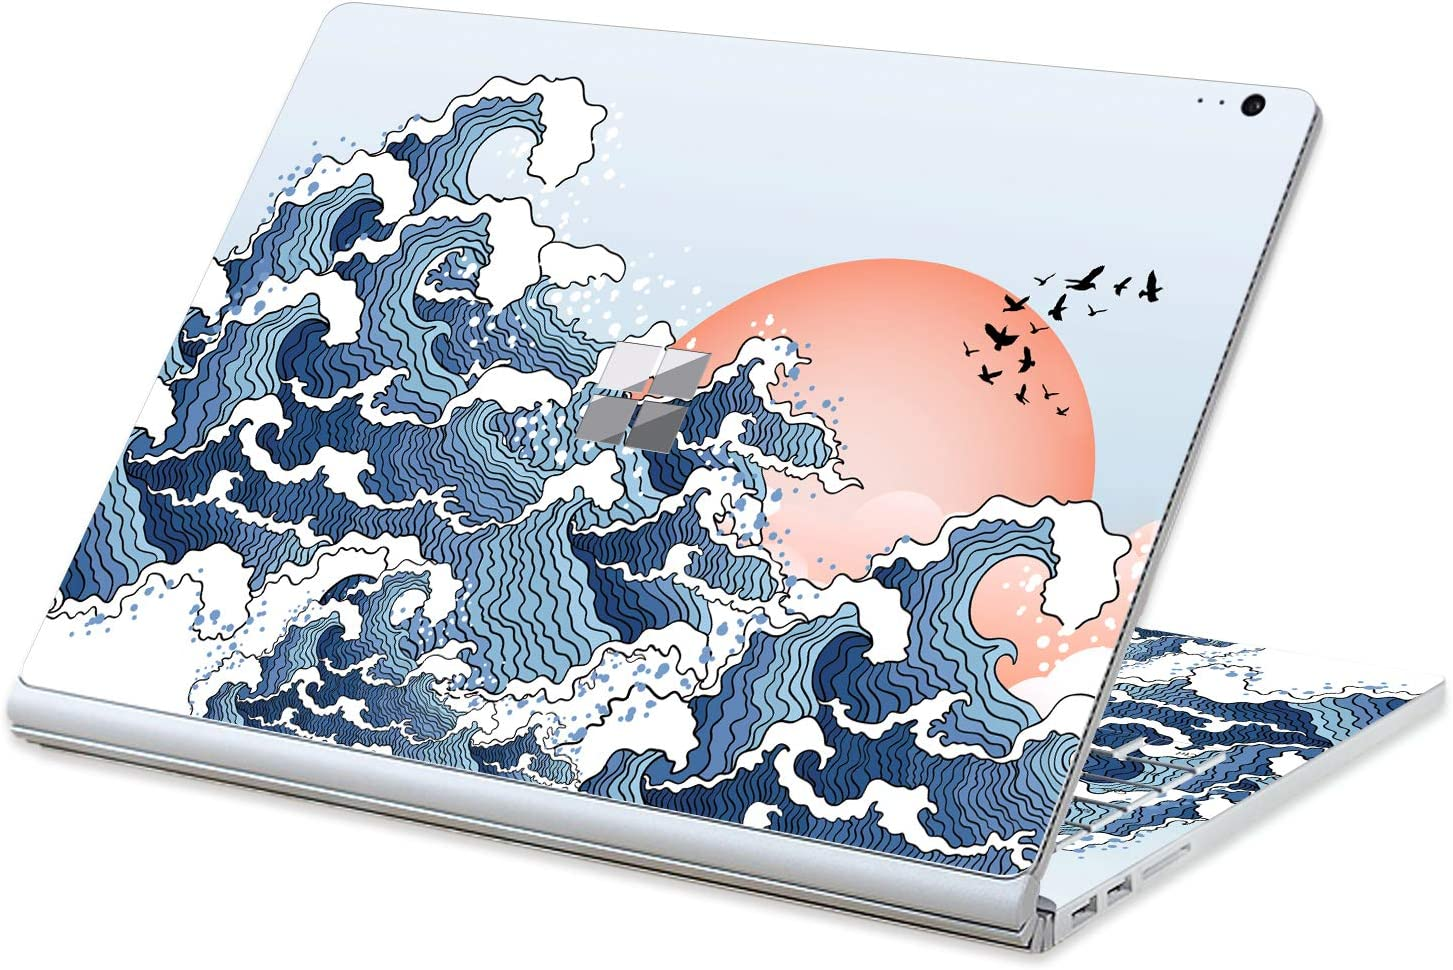 MasiBloom Laptop Surface Skin Decal Over item handling Selling rankings ☆ for inch Sticker 13.5 Micros